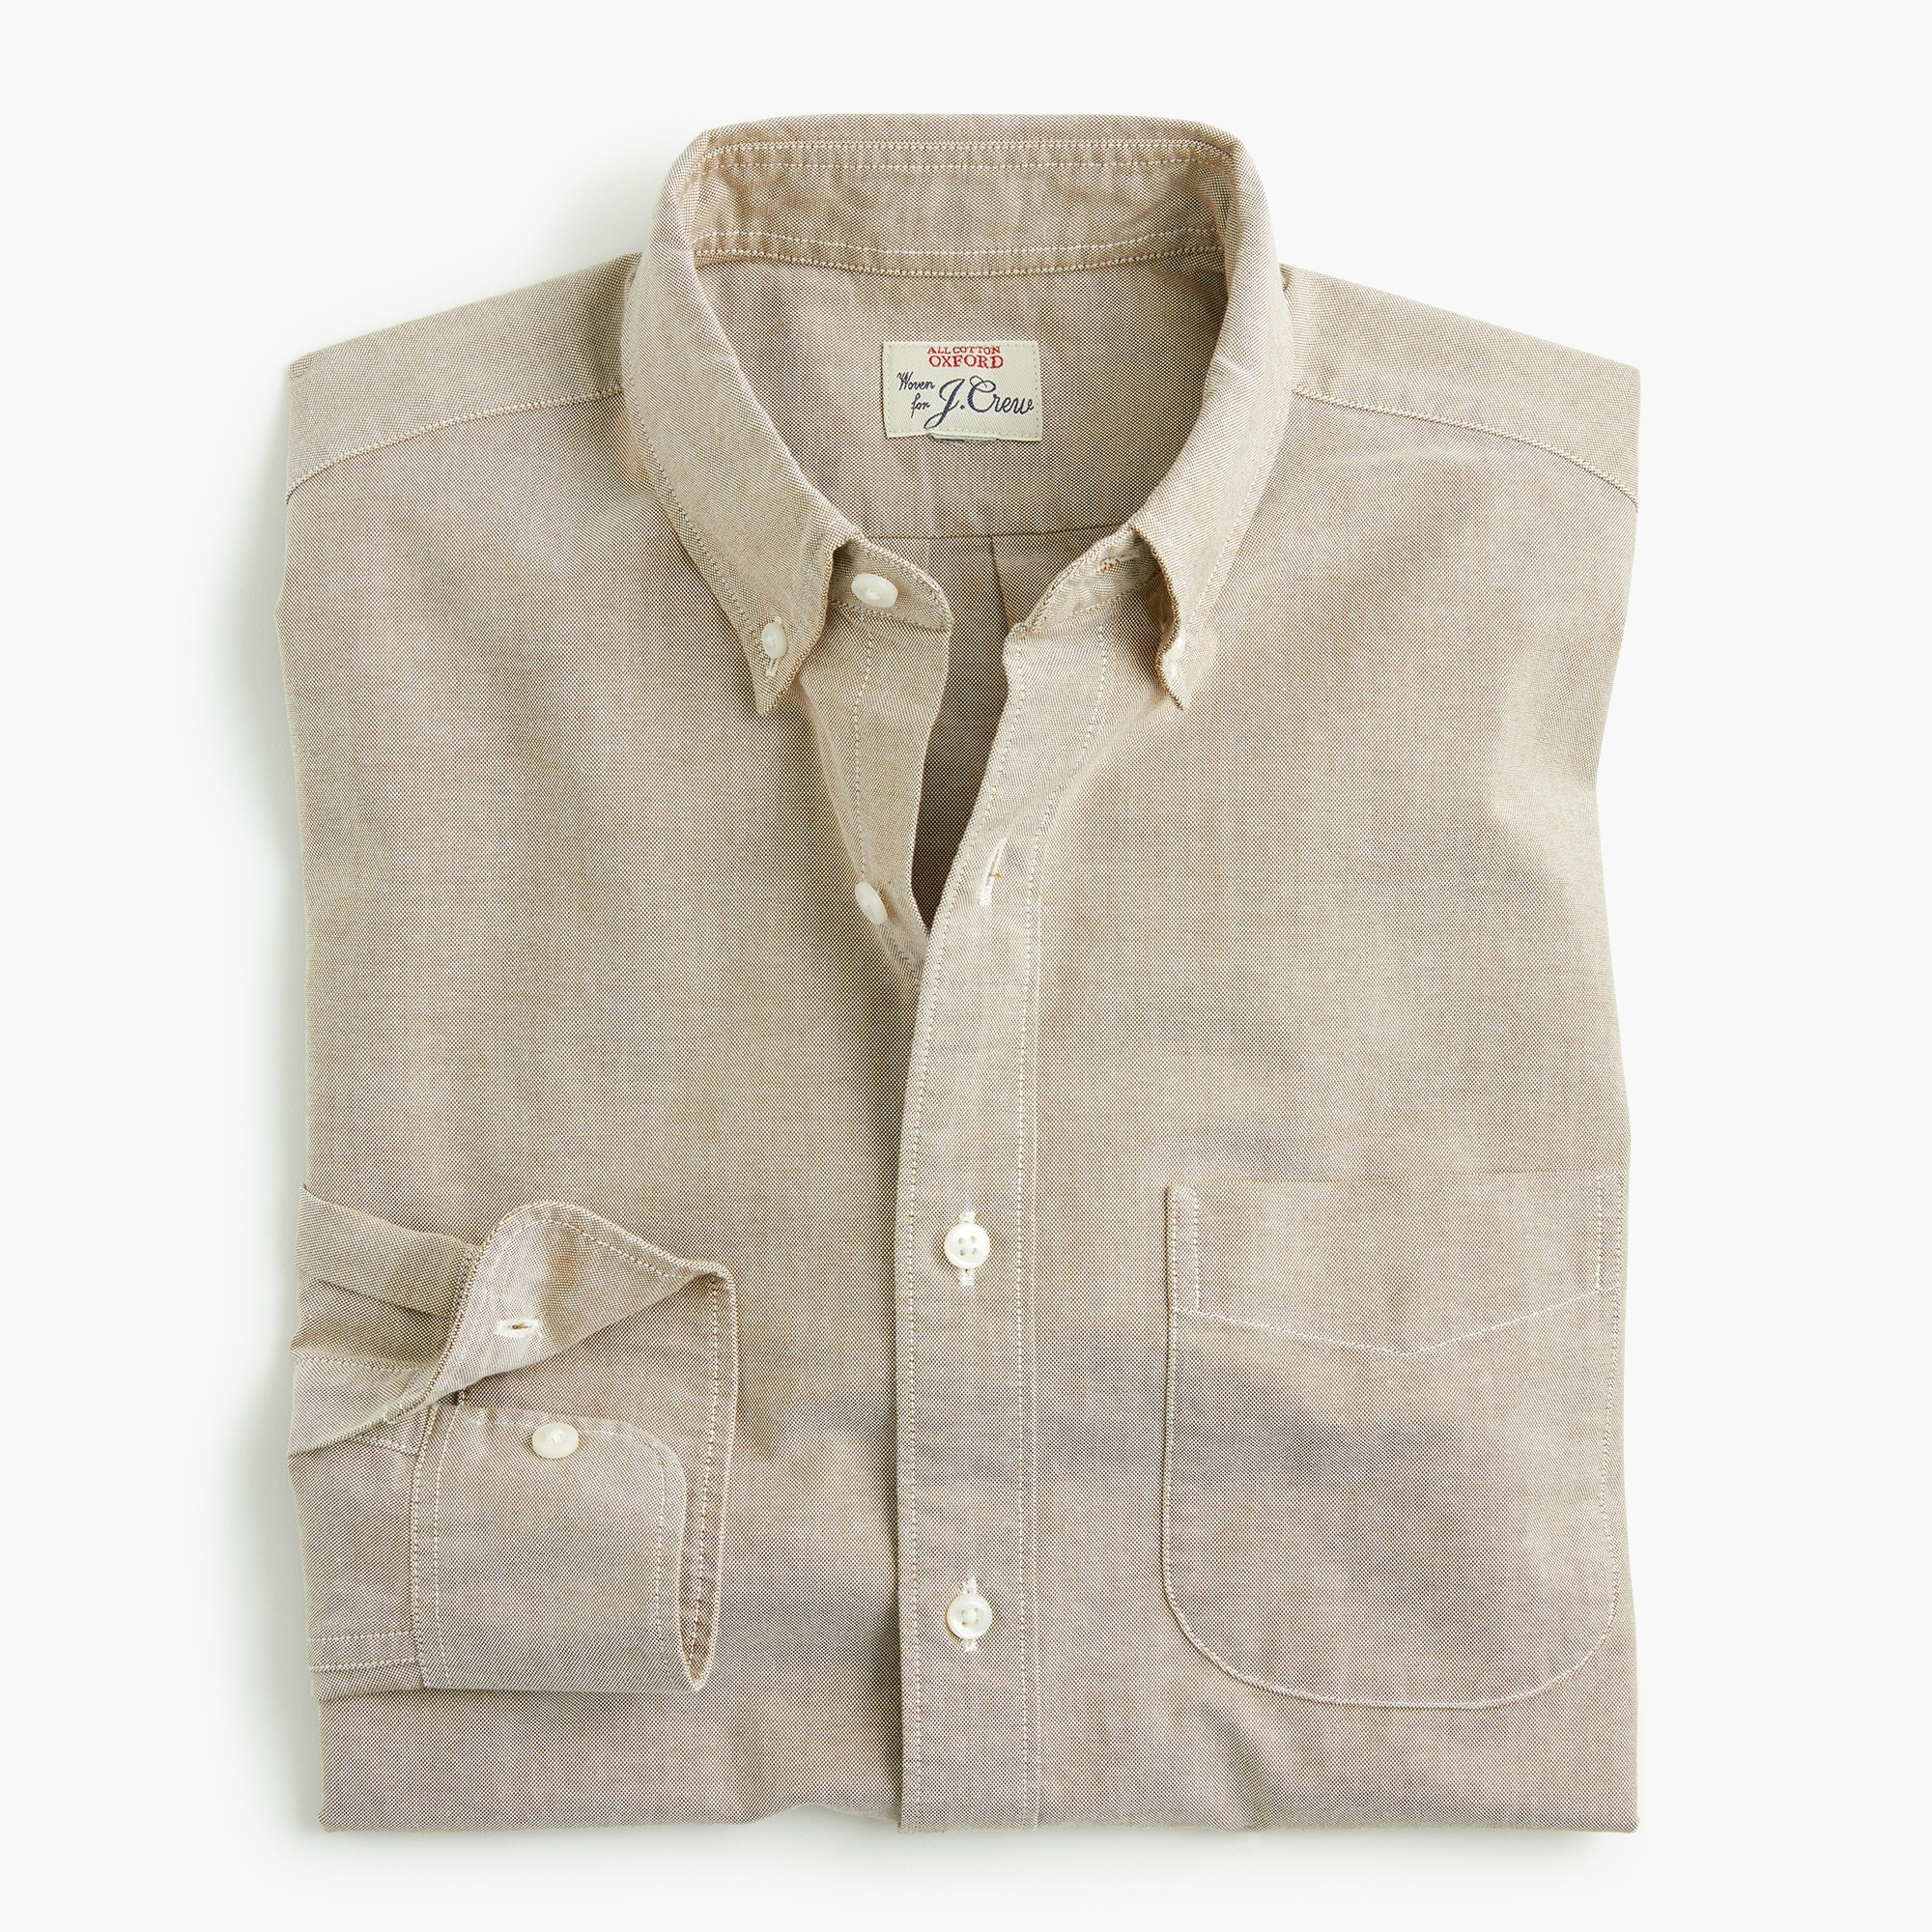 mens Untucked American Pima cotton oxford shirt with mechanical stretch